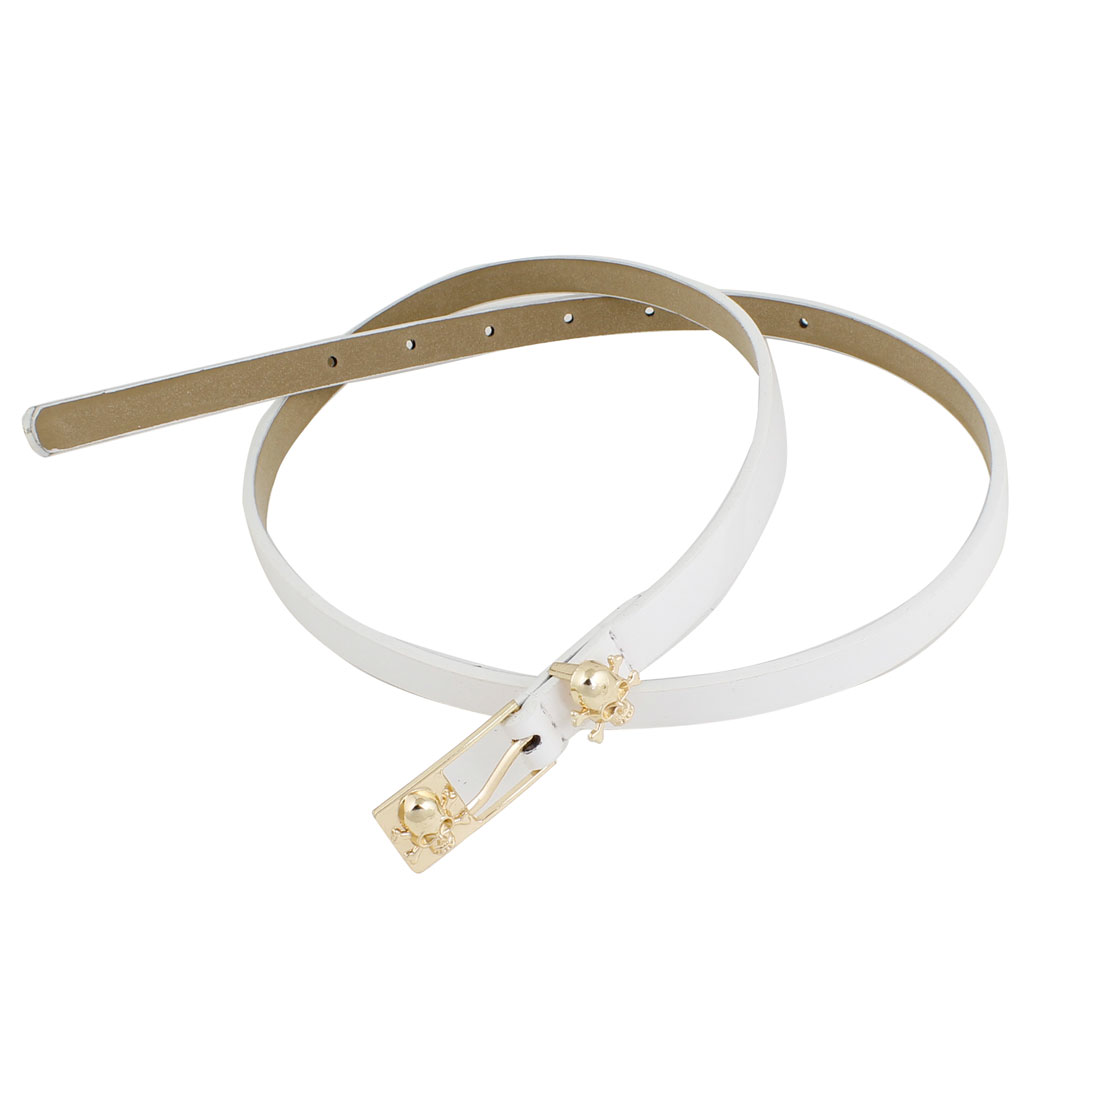 Ladies Skull Accent Single Pin Buckle Skinny Waist Belt Waistband White